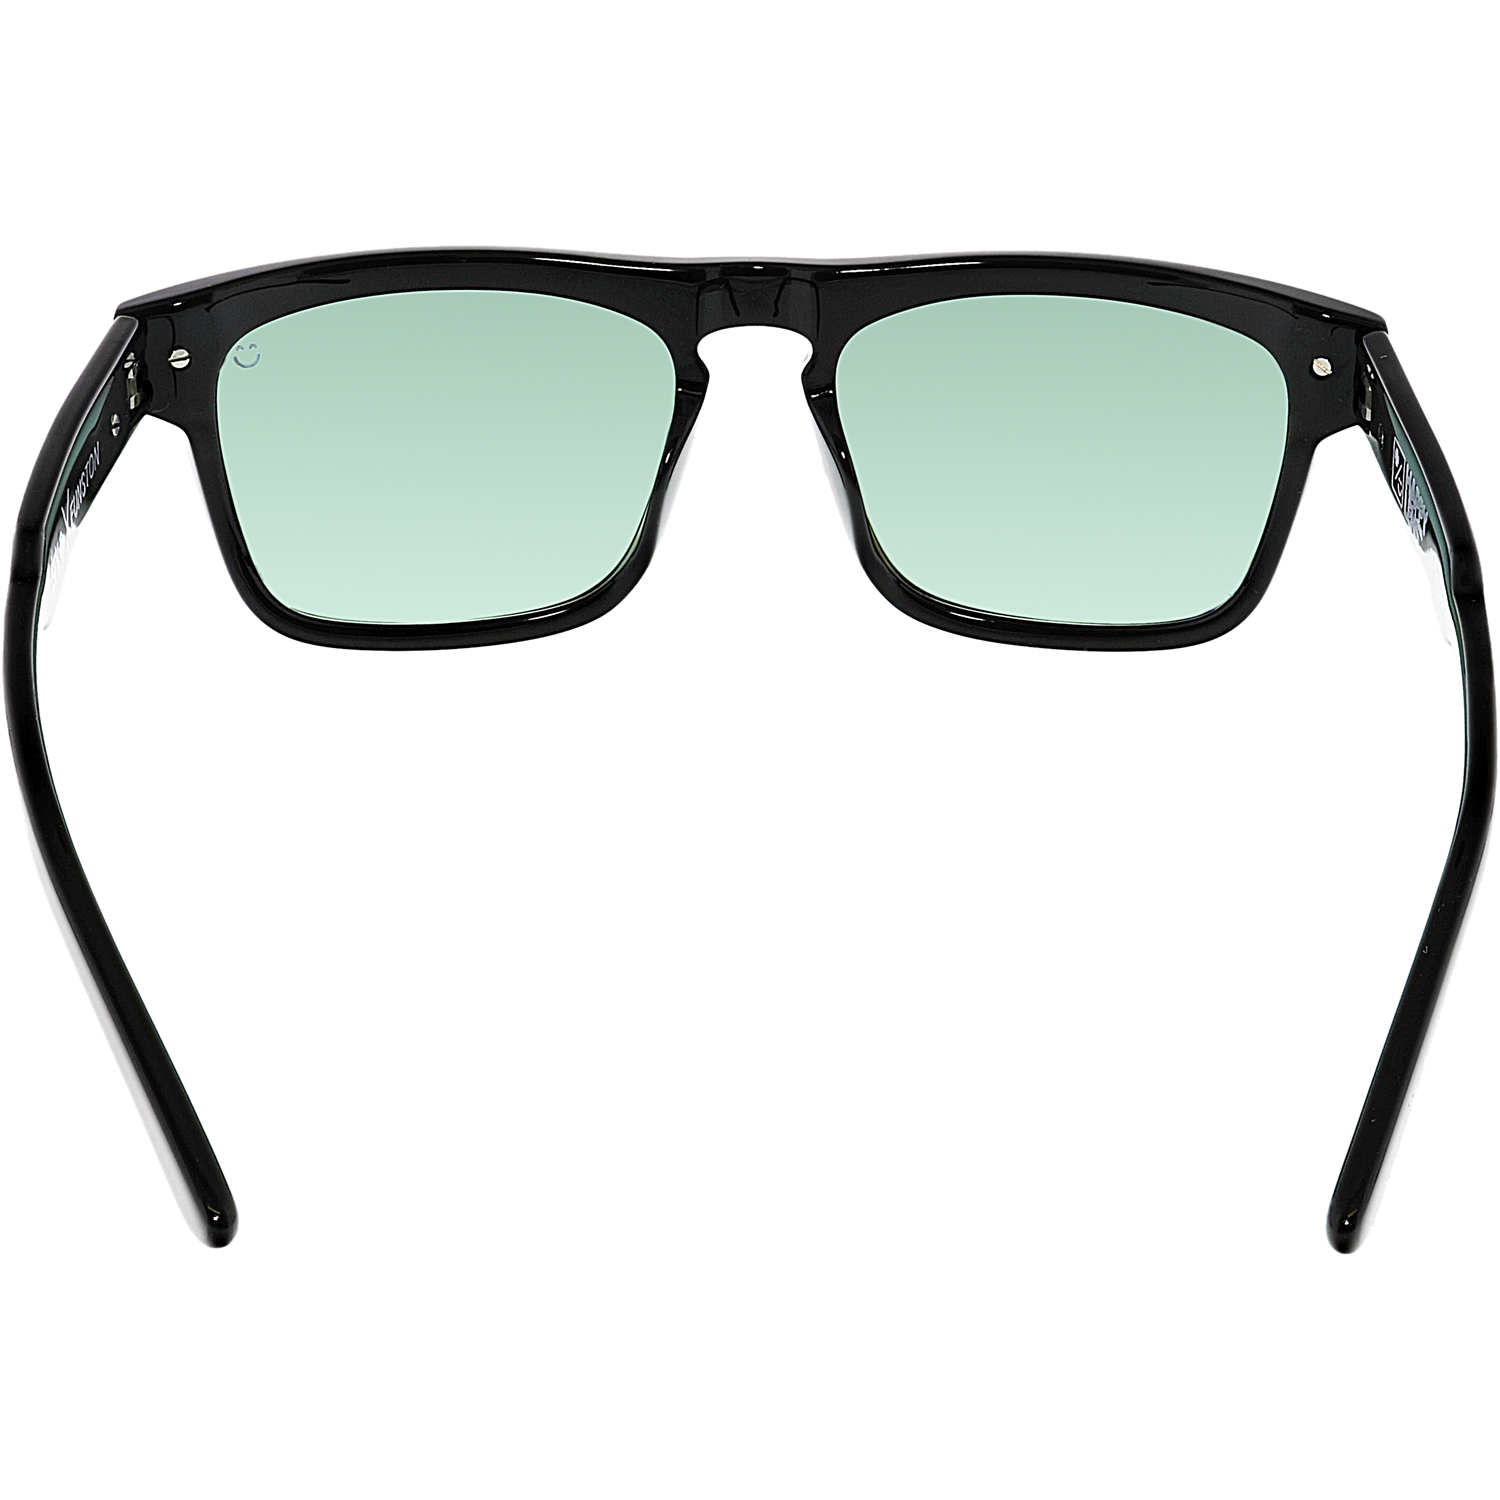 5c85f07b9b Spy - Spy Polarized Funston 673362038864 Black Rectangle Sunglasses -  Walmart.com